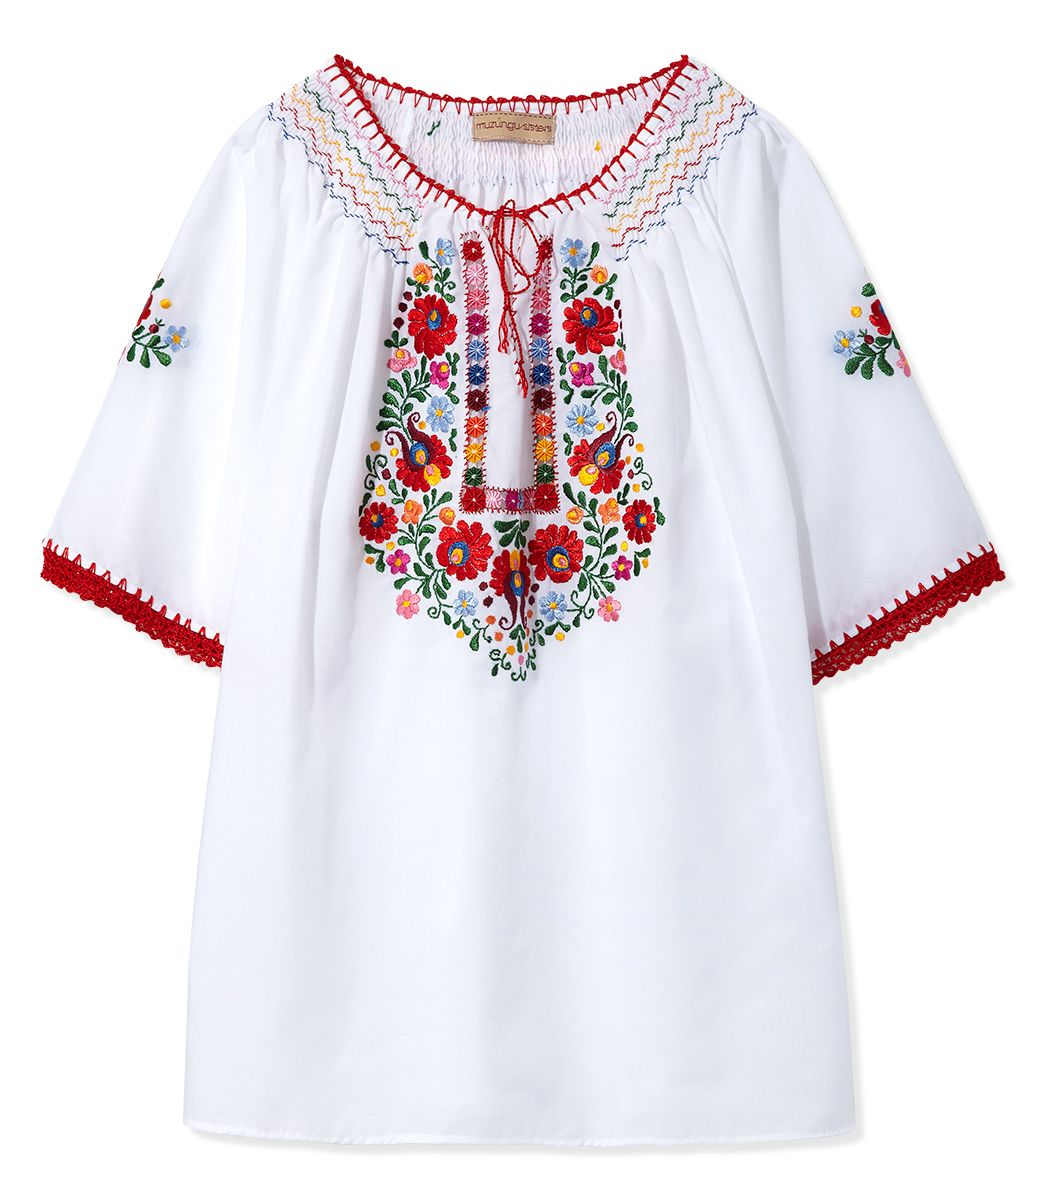 Mexican Style Embroidered Blouses Anlis